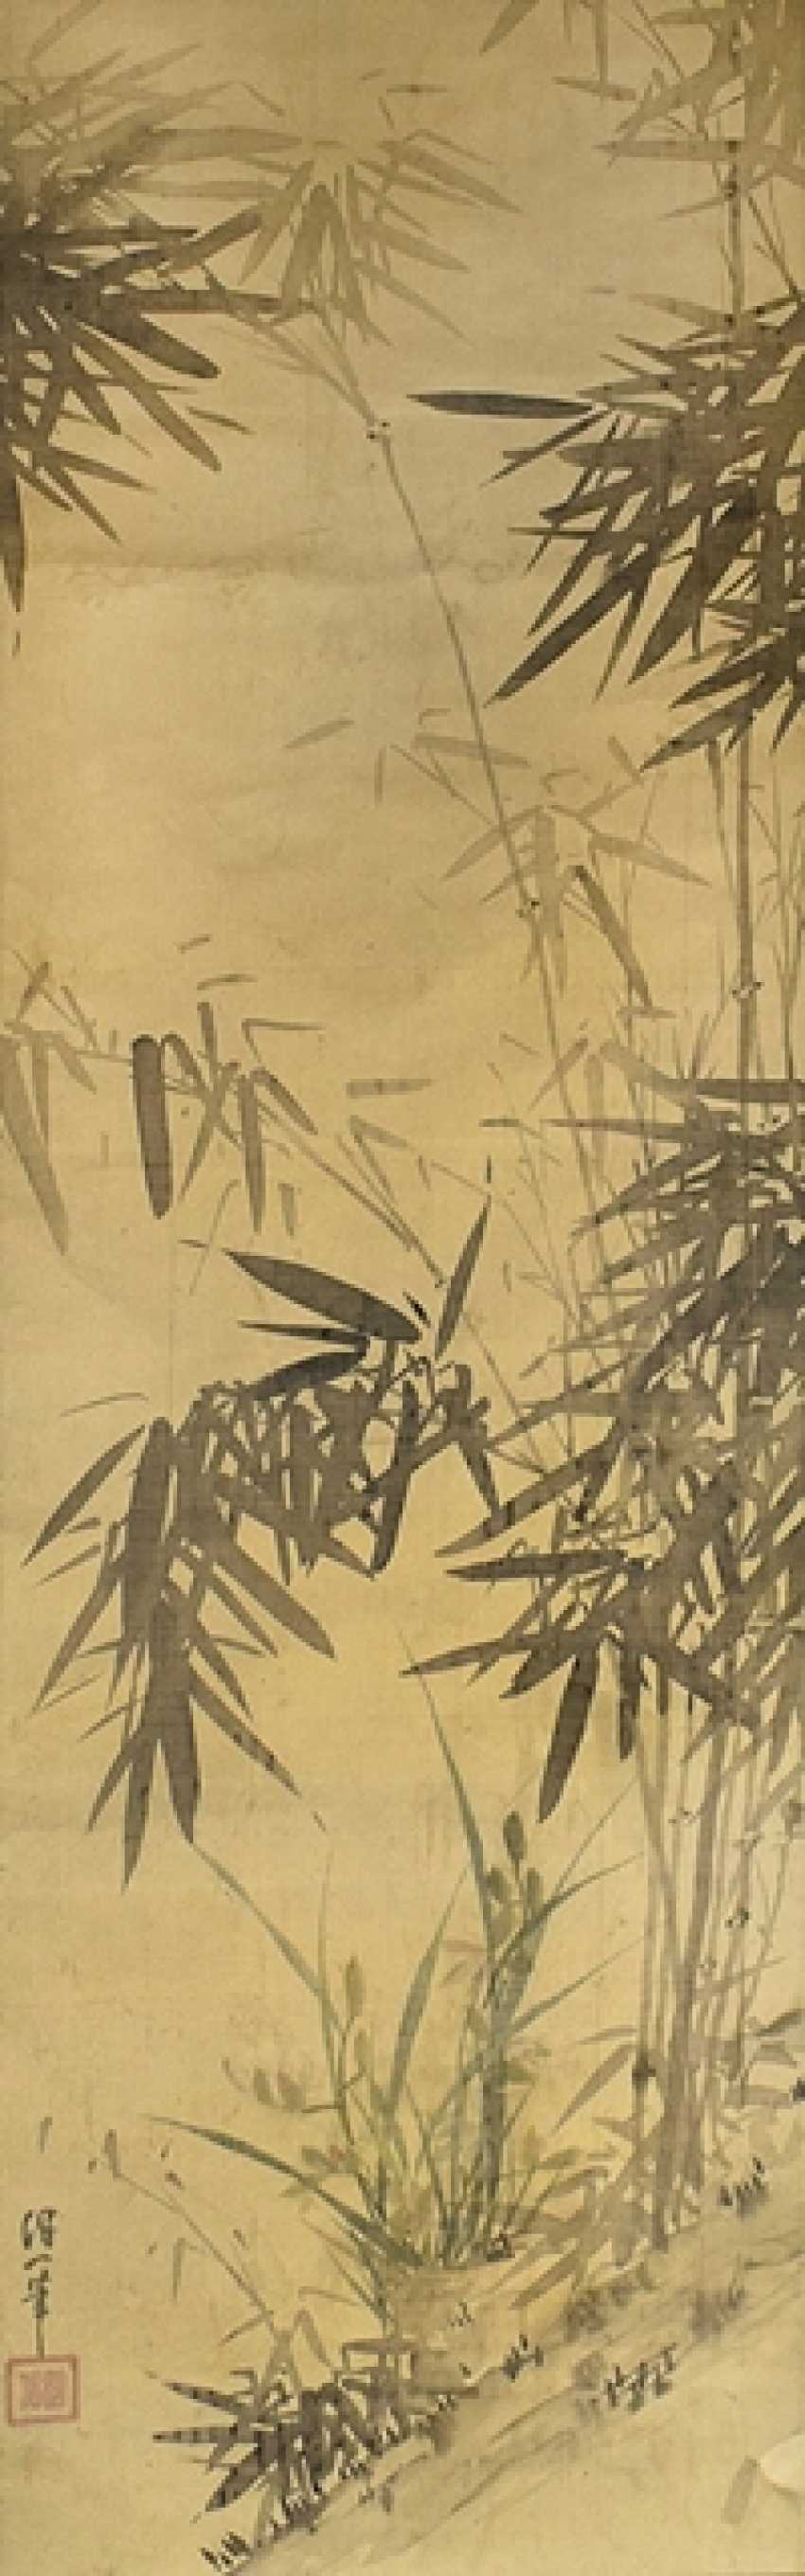 As a hanging scroll mounted painting of bamboo - photo 1